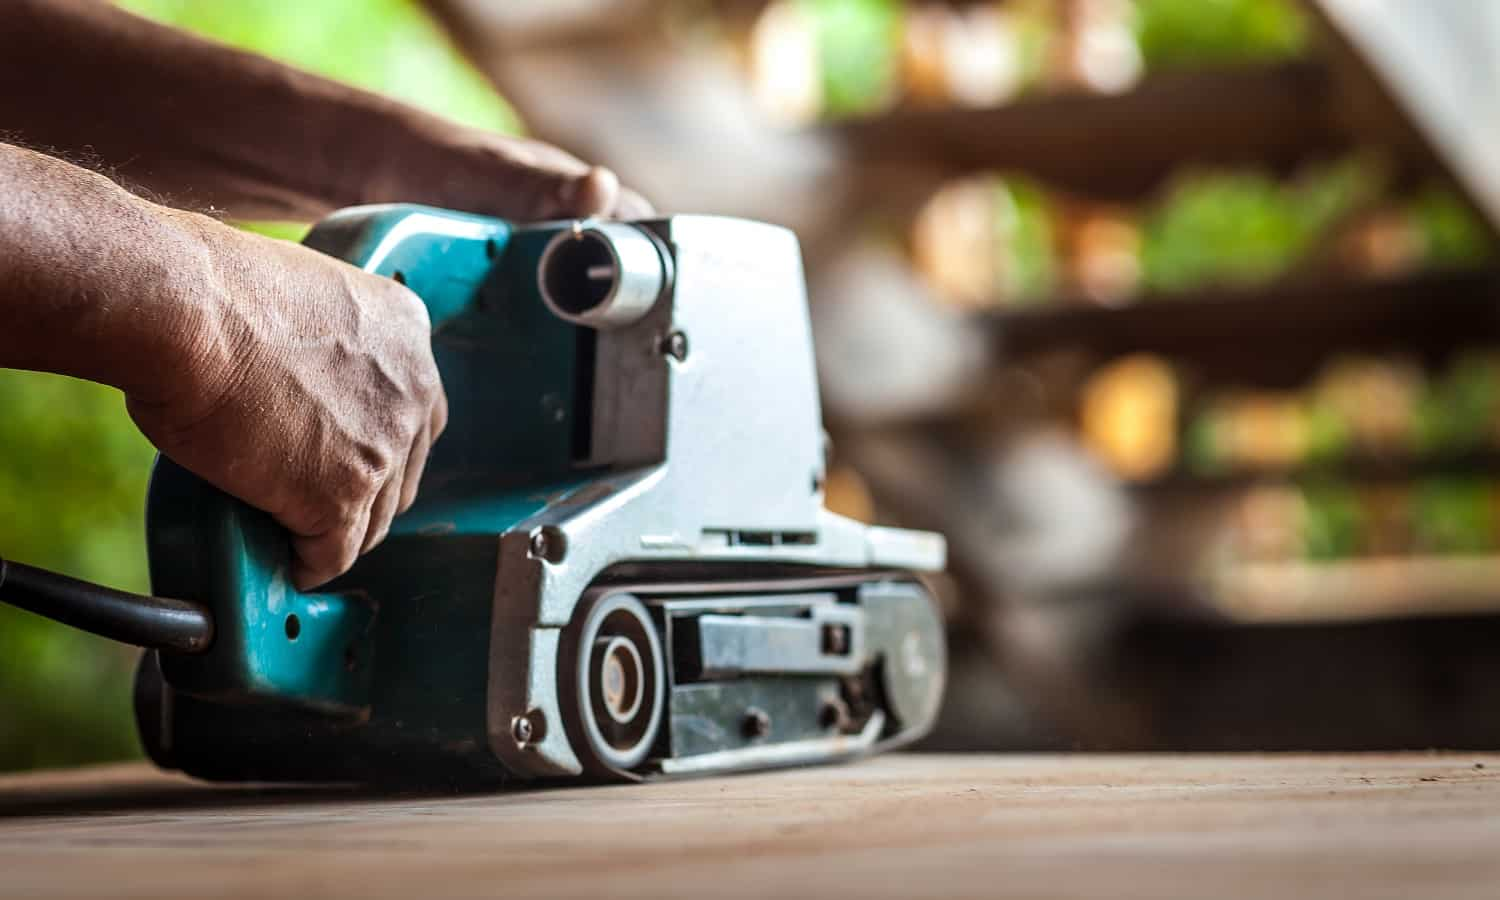 A skilled carpenter is using the power sander as a tool to polish his furniture instead of sandpaper.